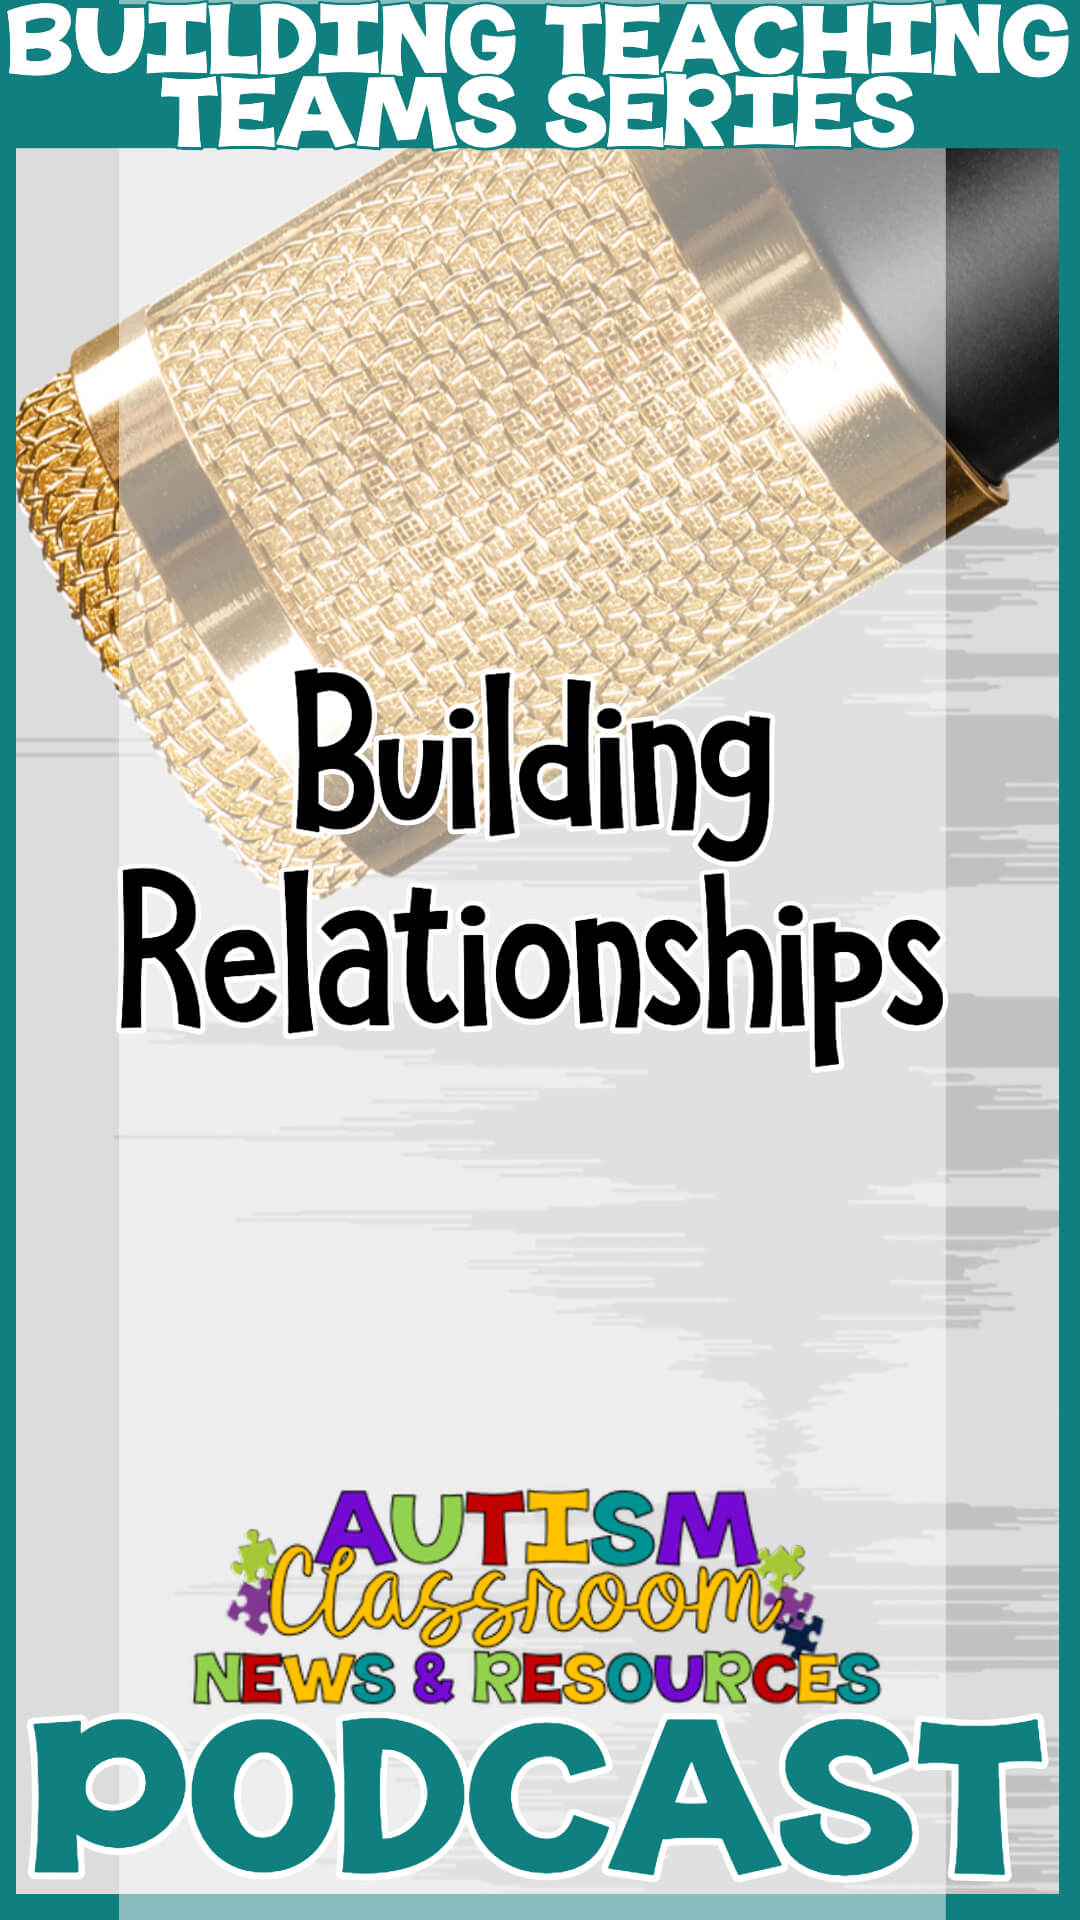 Microphone: Building Teaching Teams Episode 1 Building Relationships Autism Classroom Resources Podcast